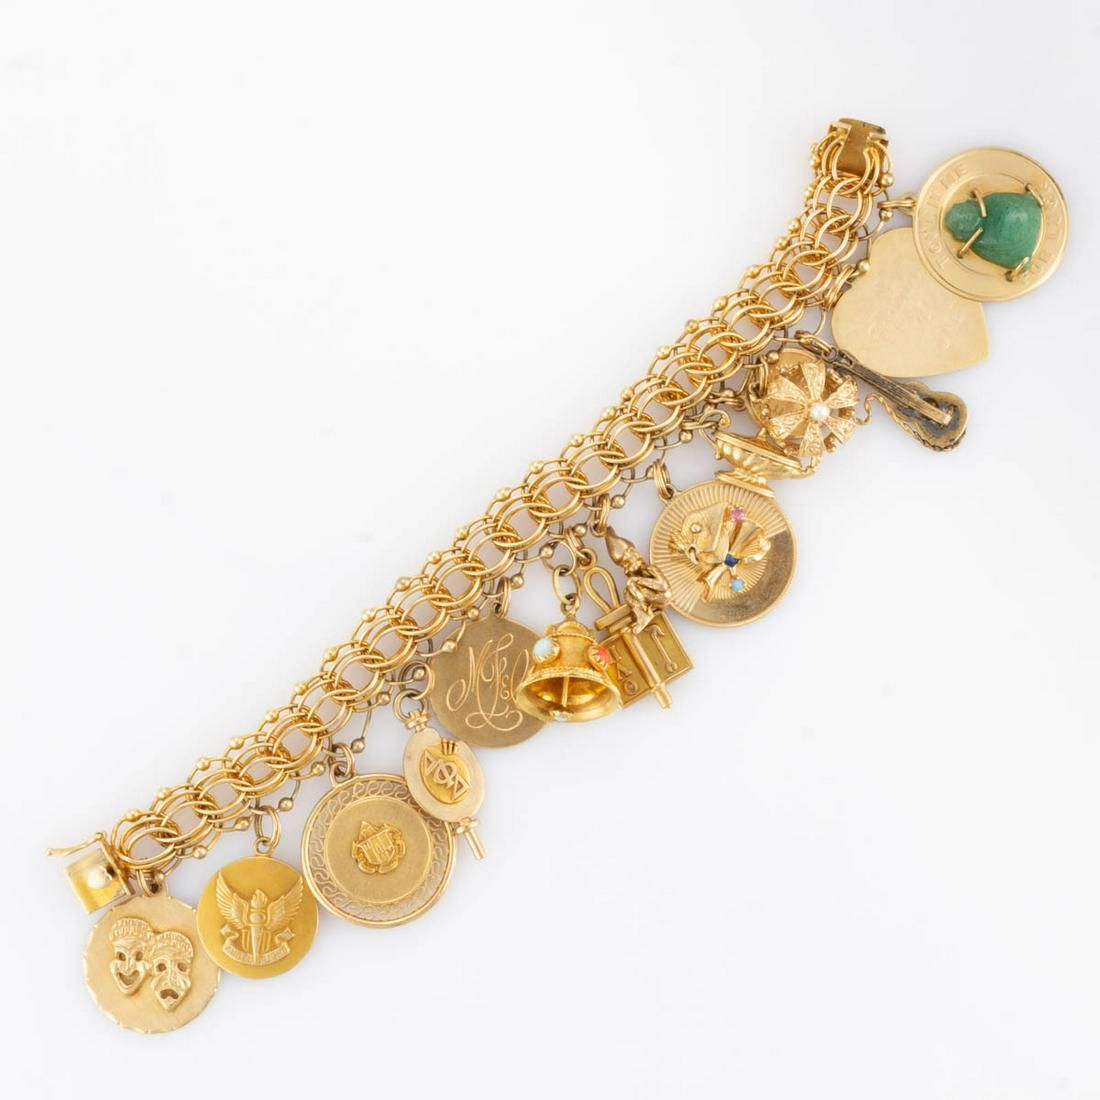 VINTAGE 14K YELLOW GOLD CHARM BRACELET WITH 14K AND